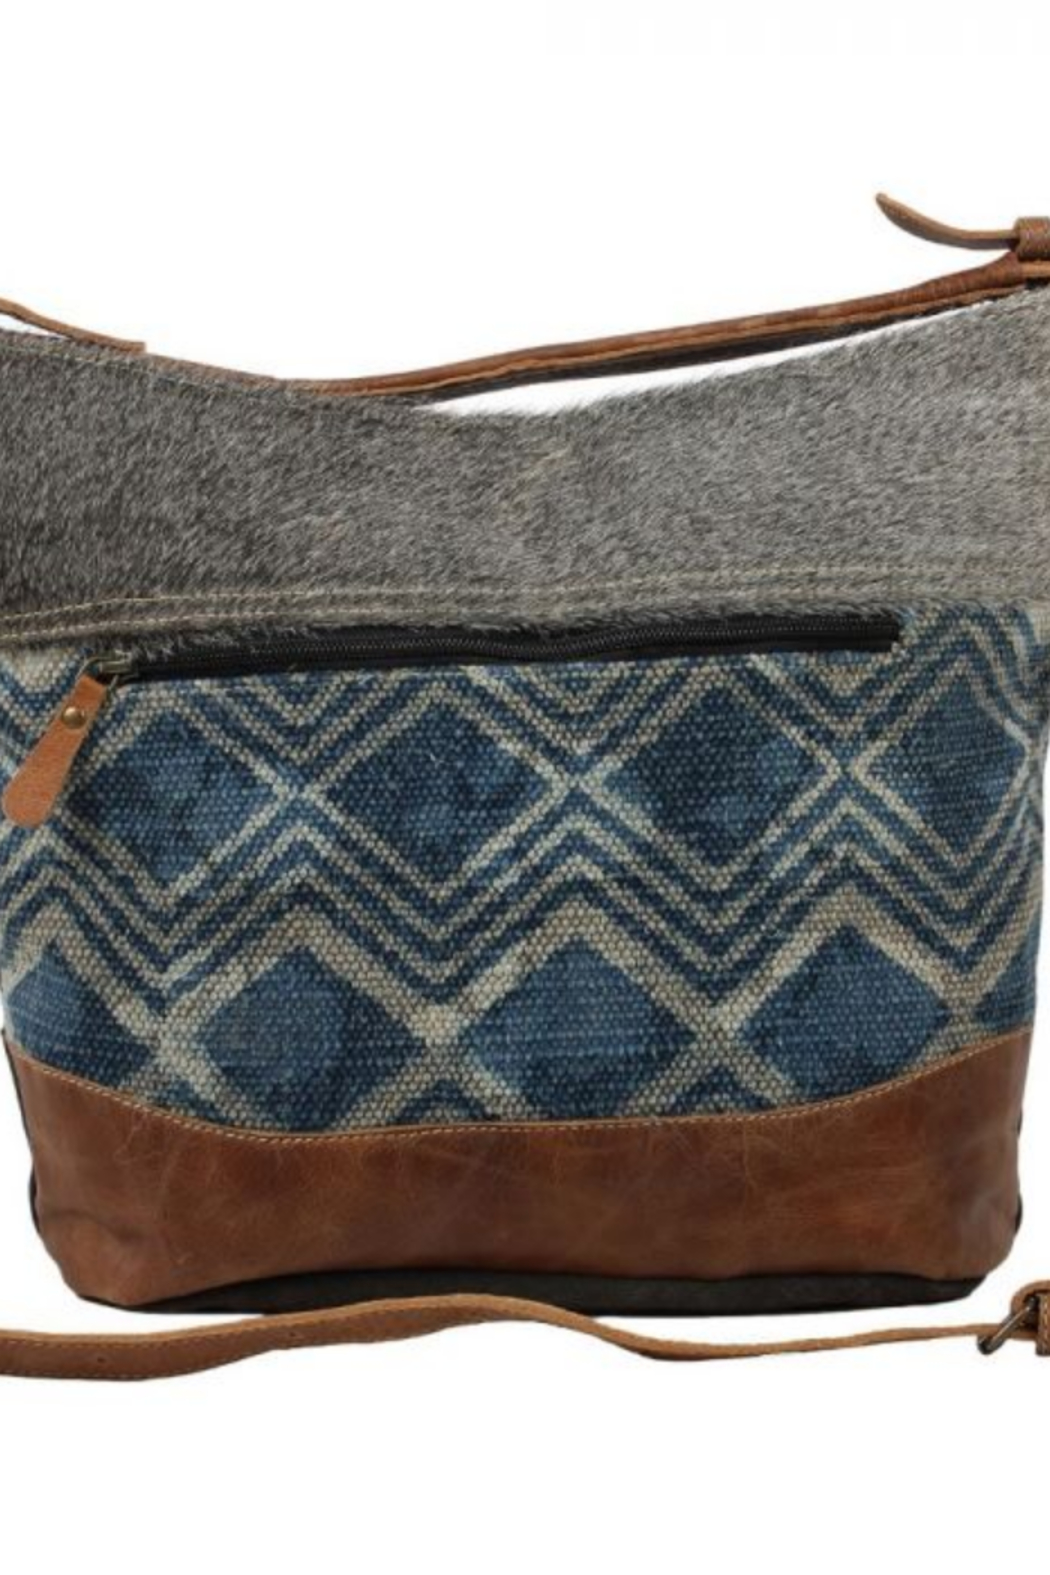 Myra Bag Myra Mid Town Tide Shoulder Bag 1583 - Main Image